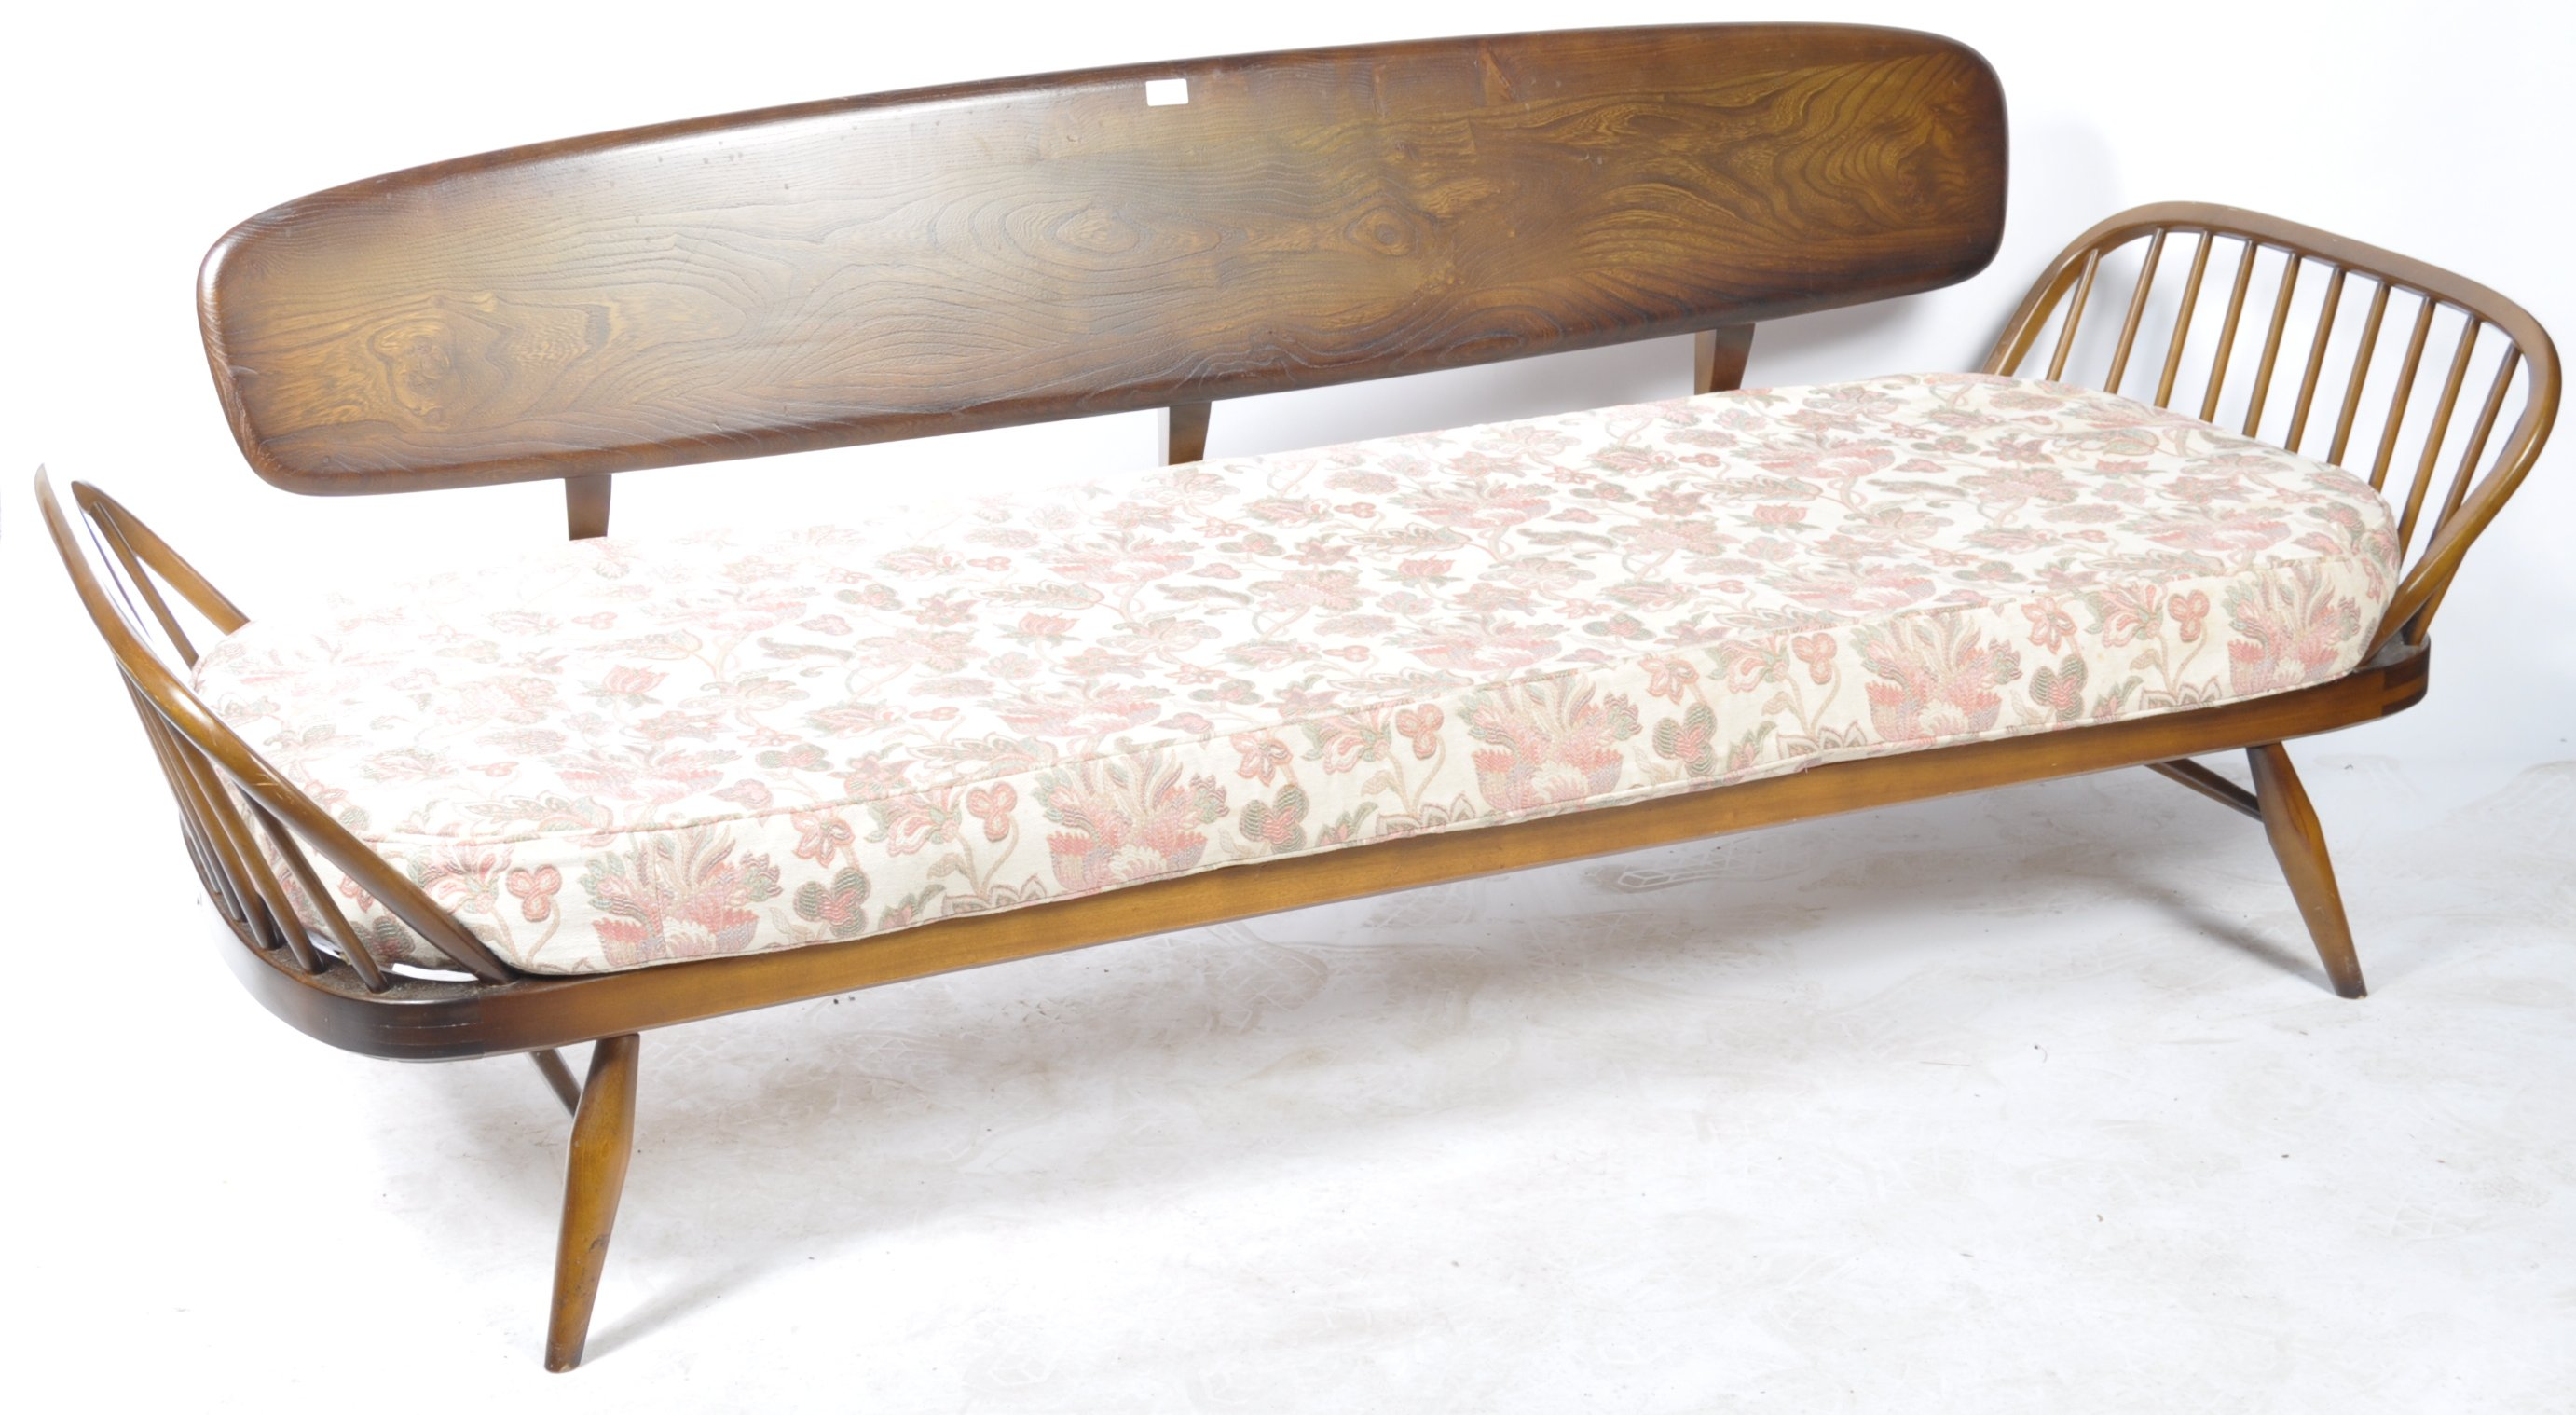 Lot 25 - LUCIAN ERCOLANI - ERCOL DAYBED SOFA SETTEE COUCH MODEL 355